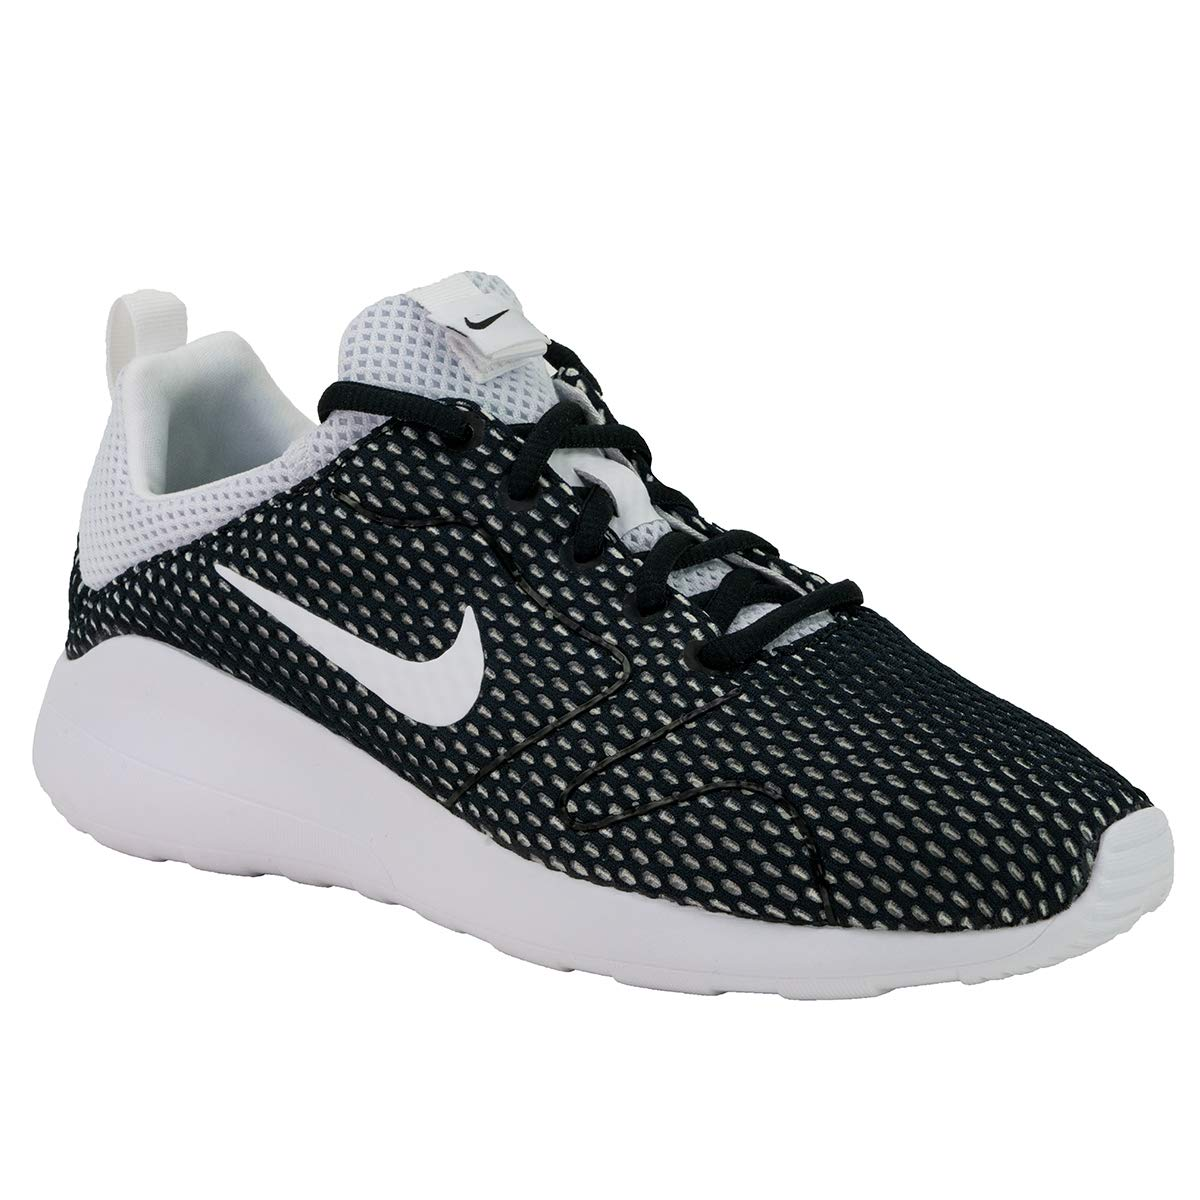 more photos 30b83 b3b7d Galleon - NIKE Men s Kaishi 2.0 SE Running Shoes Black White 7.5